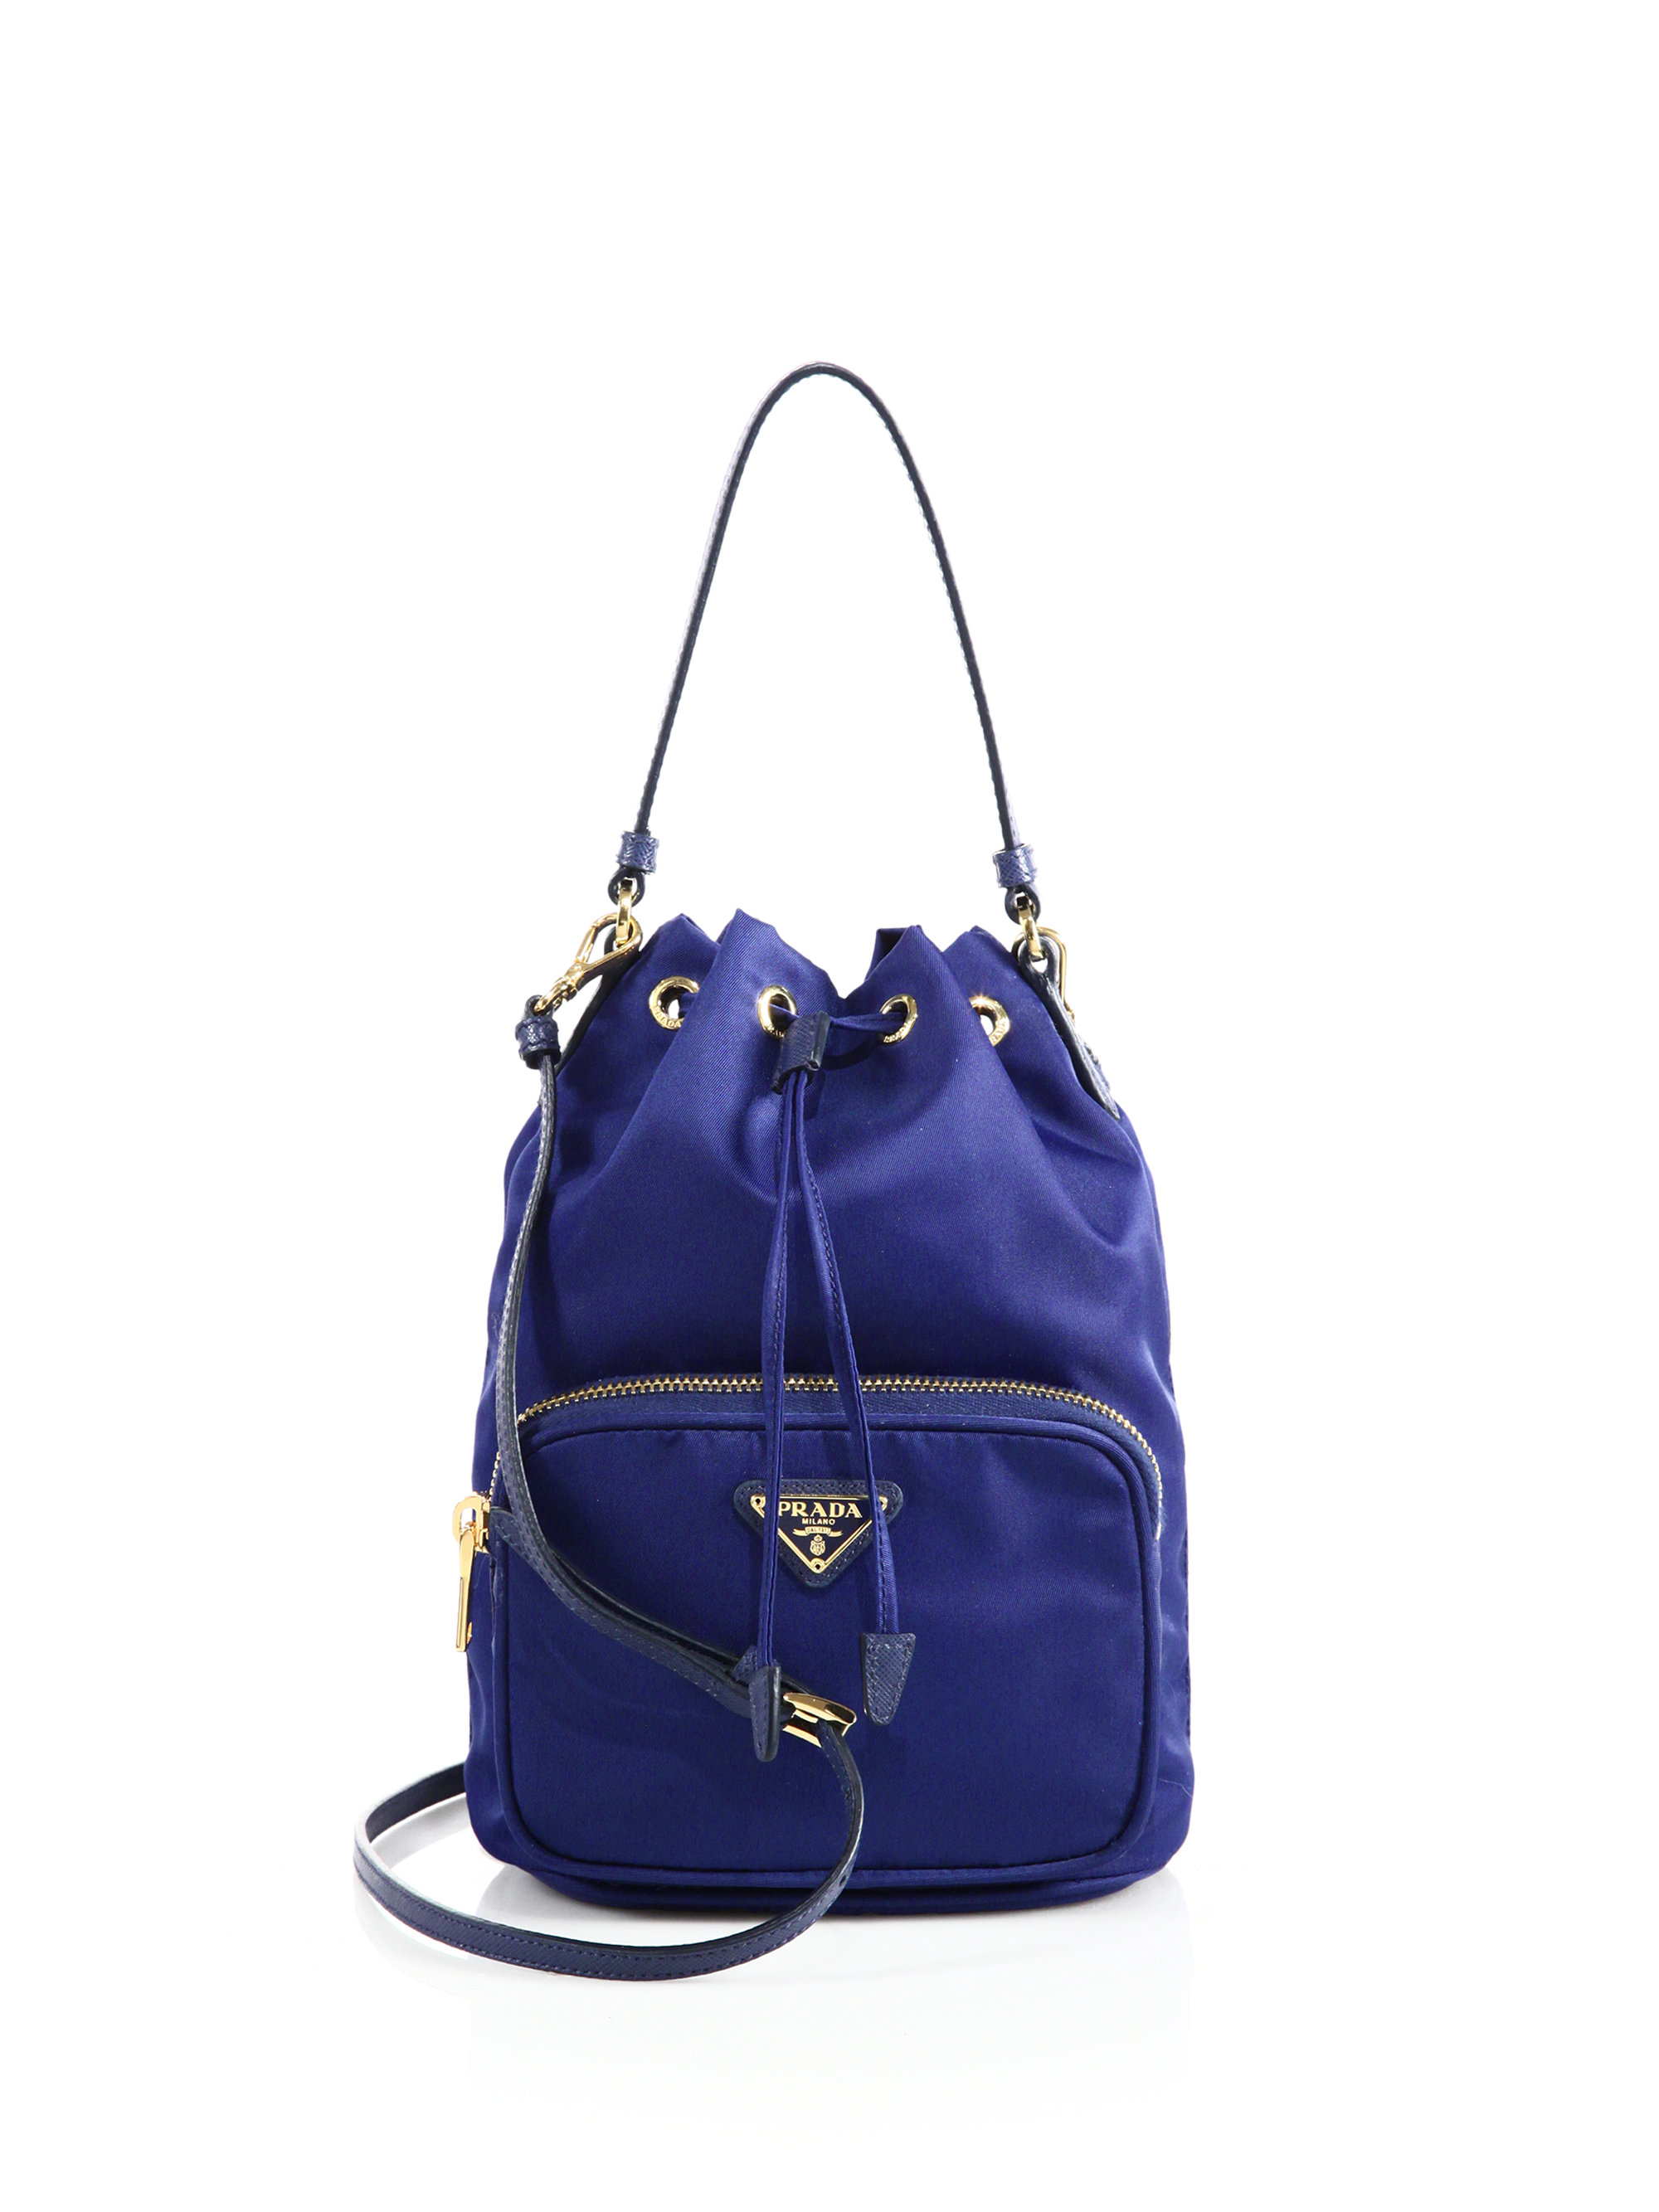 prada inspired - Prada Mini Nylon & Leather Bucket Bag in Blue | Lyst